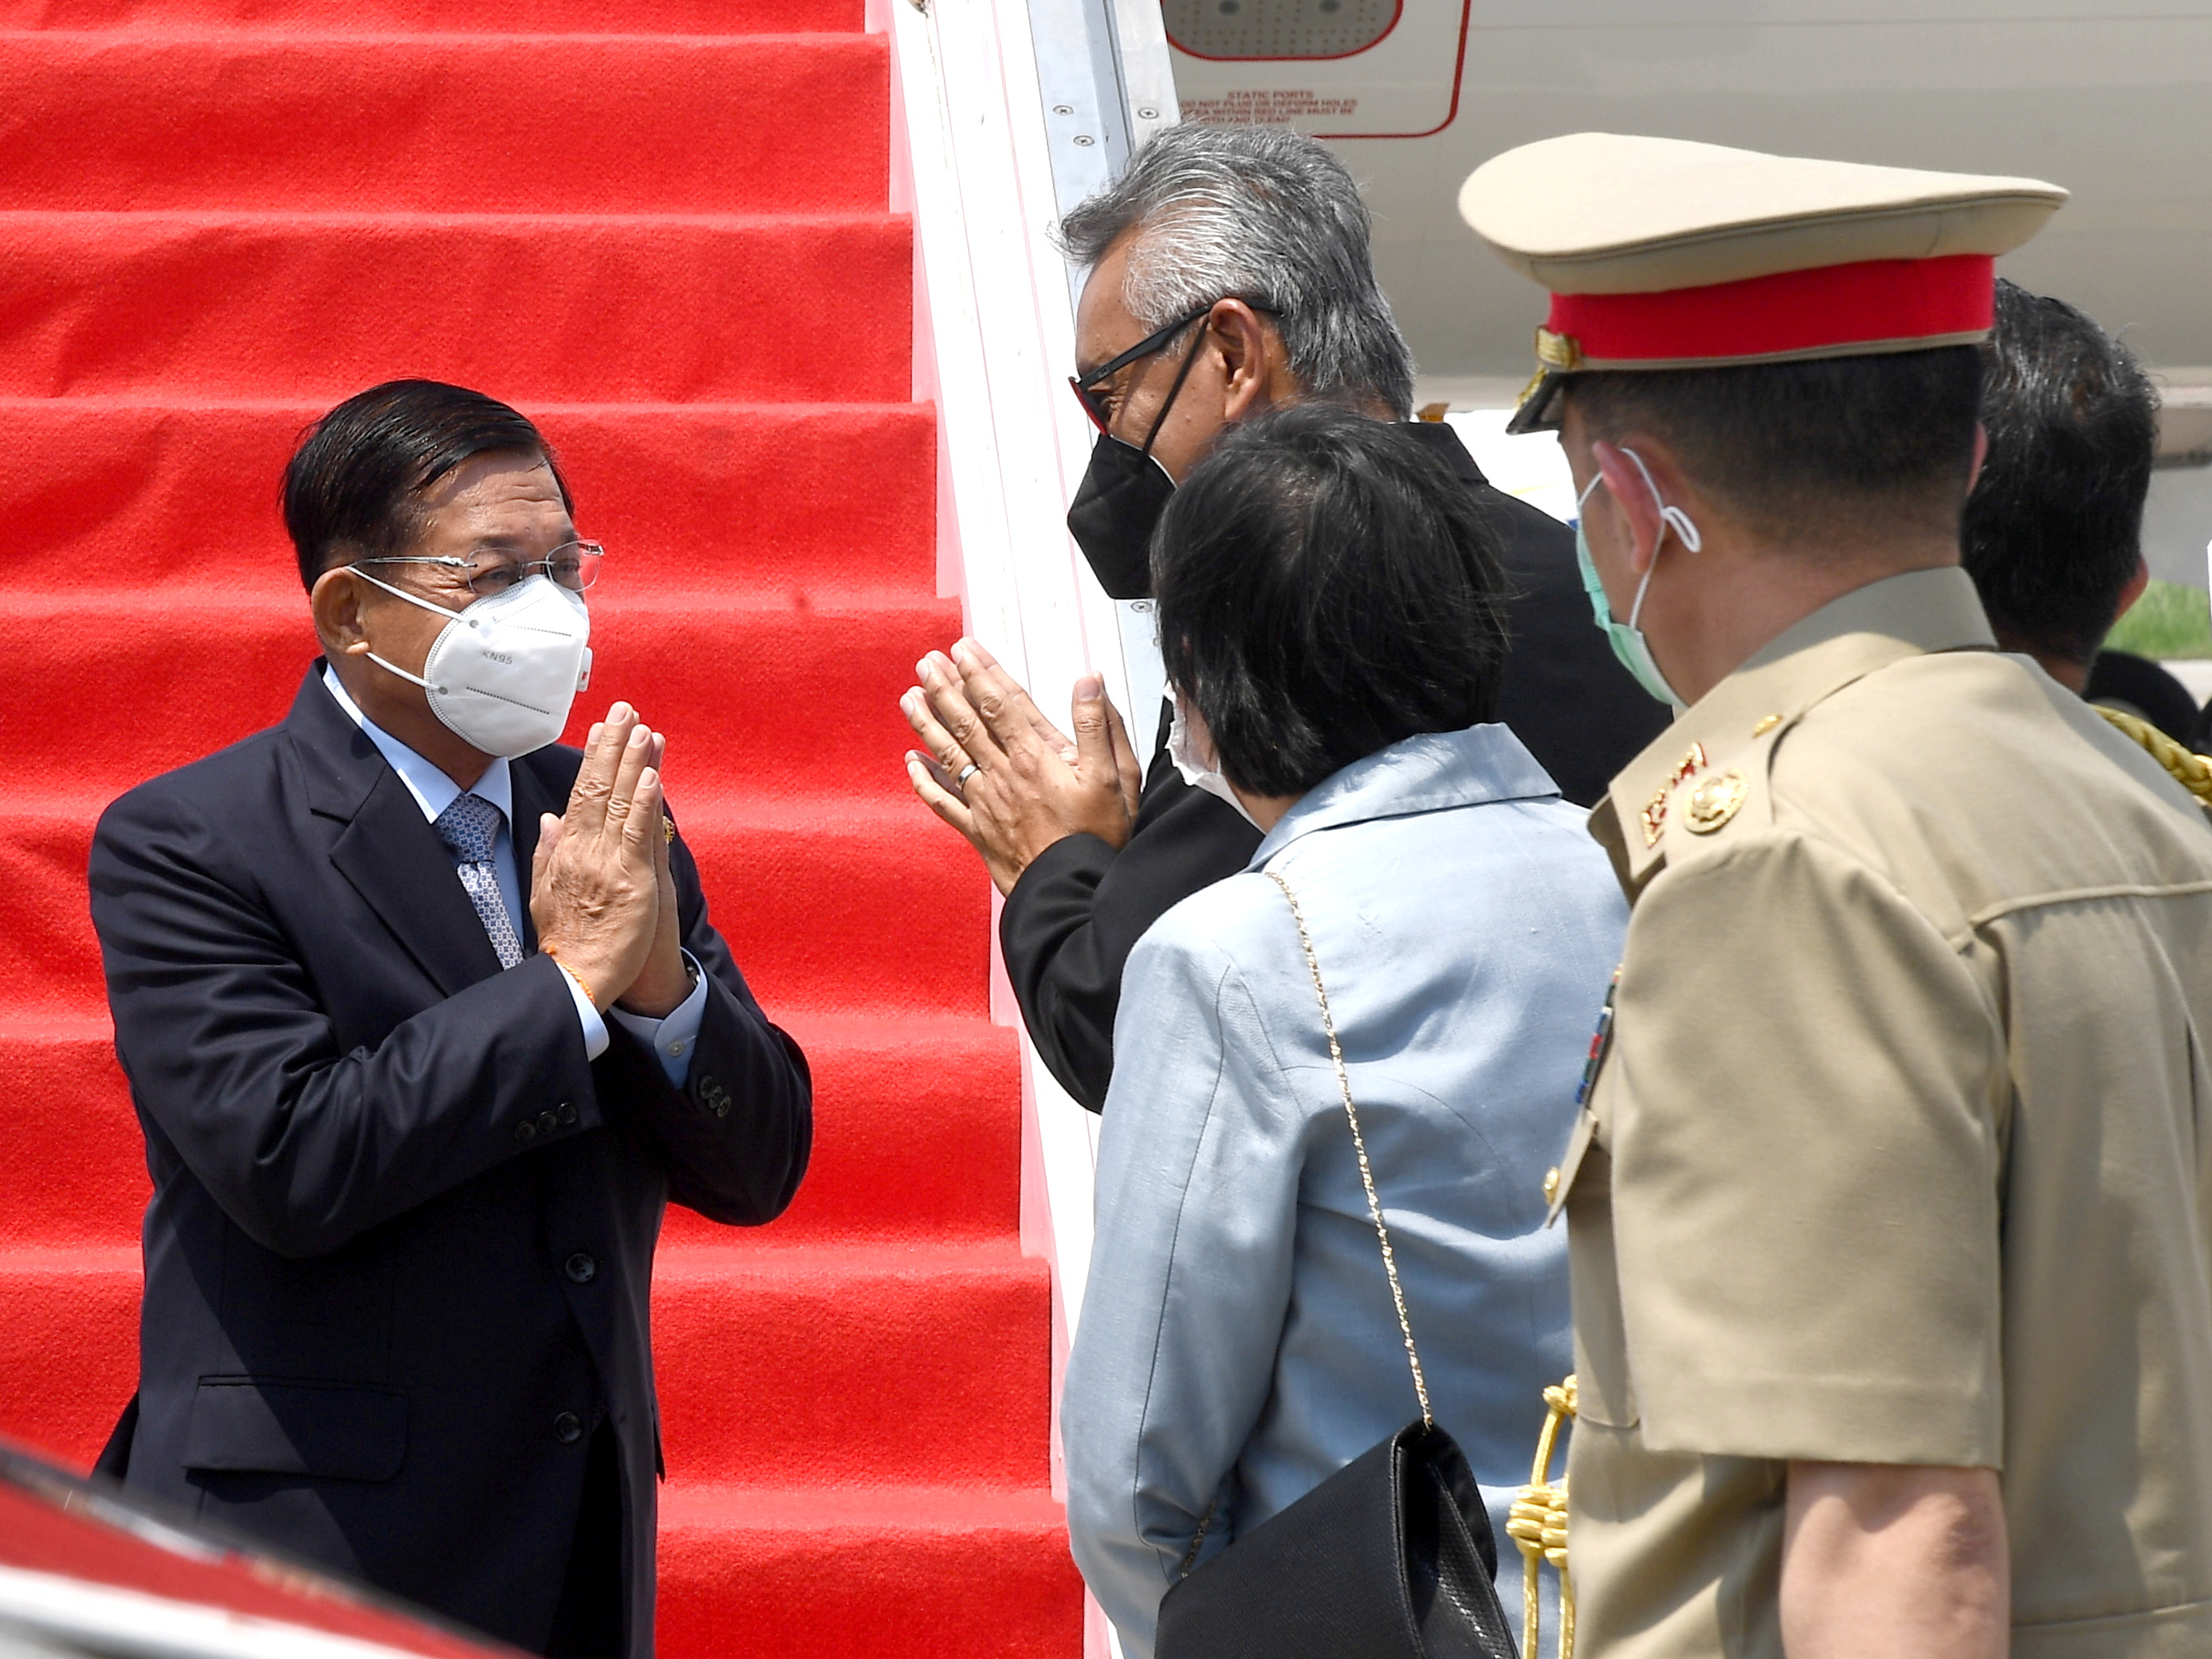 Myanmar's junta chief Senior General Min Aung Hlaing (L) gestures as he is welcomed upon his arrival ahead of the ASEAN leaders' summit, at the Soekarno Hatta International airport in Tangerang, on the outskirts of Jakarta, Indonesia, April 24, 2021. Courtesy of Rusman/Indonesian Presidential Palace/Handout via REUTERS